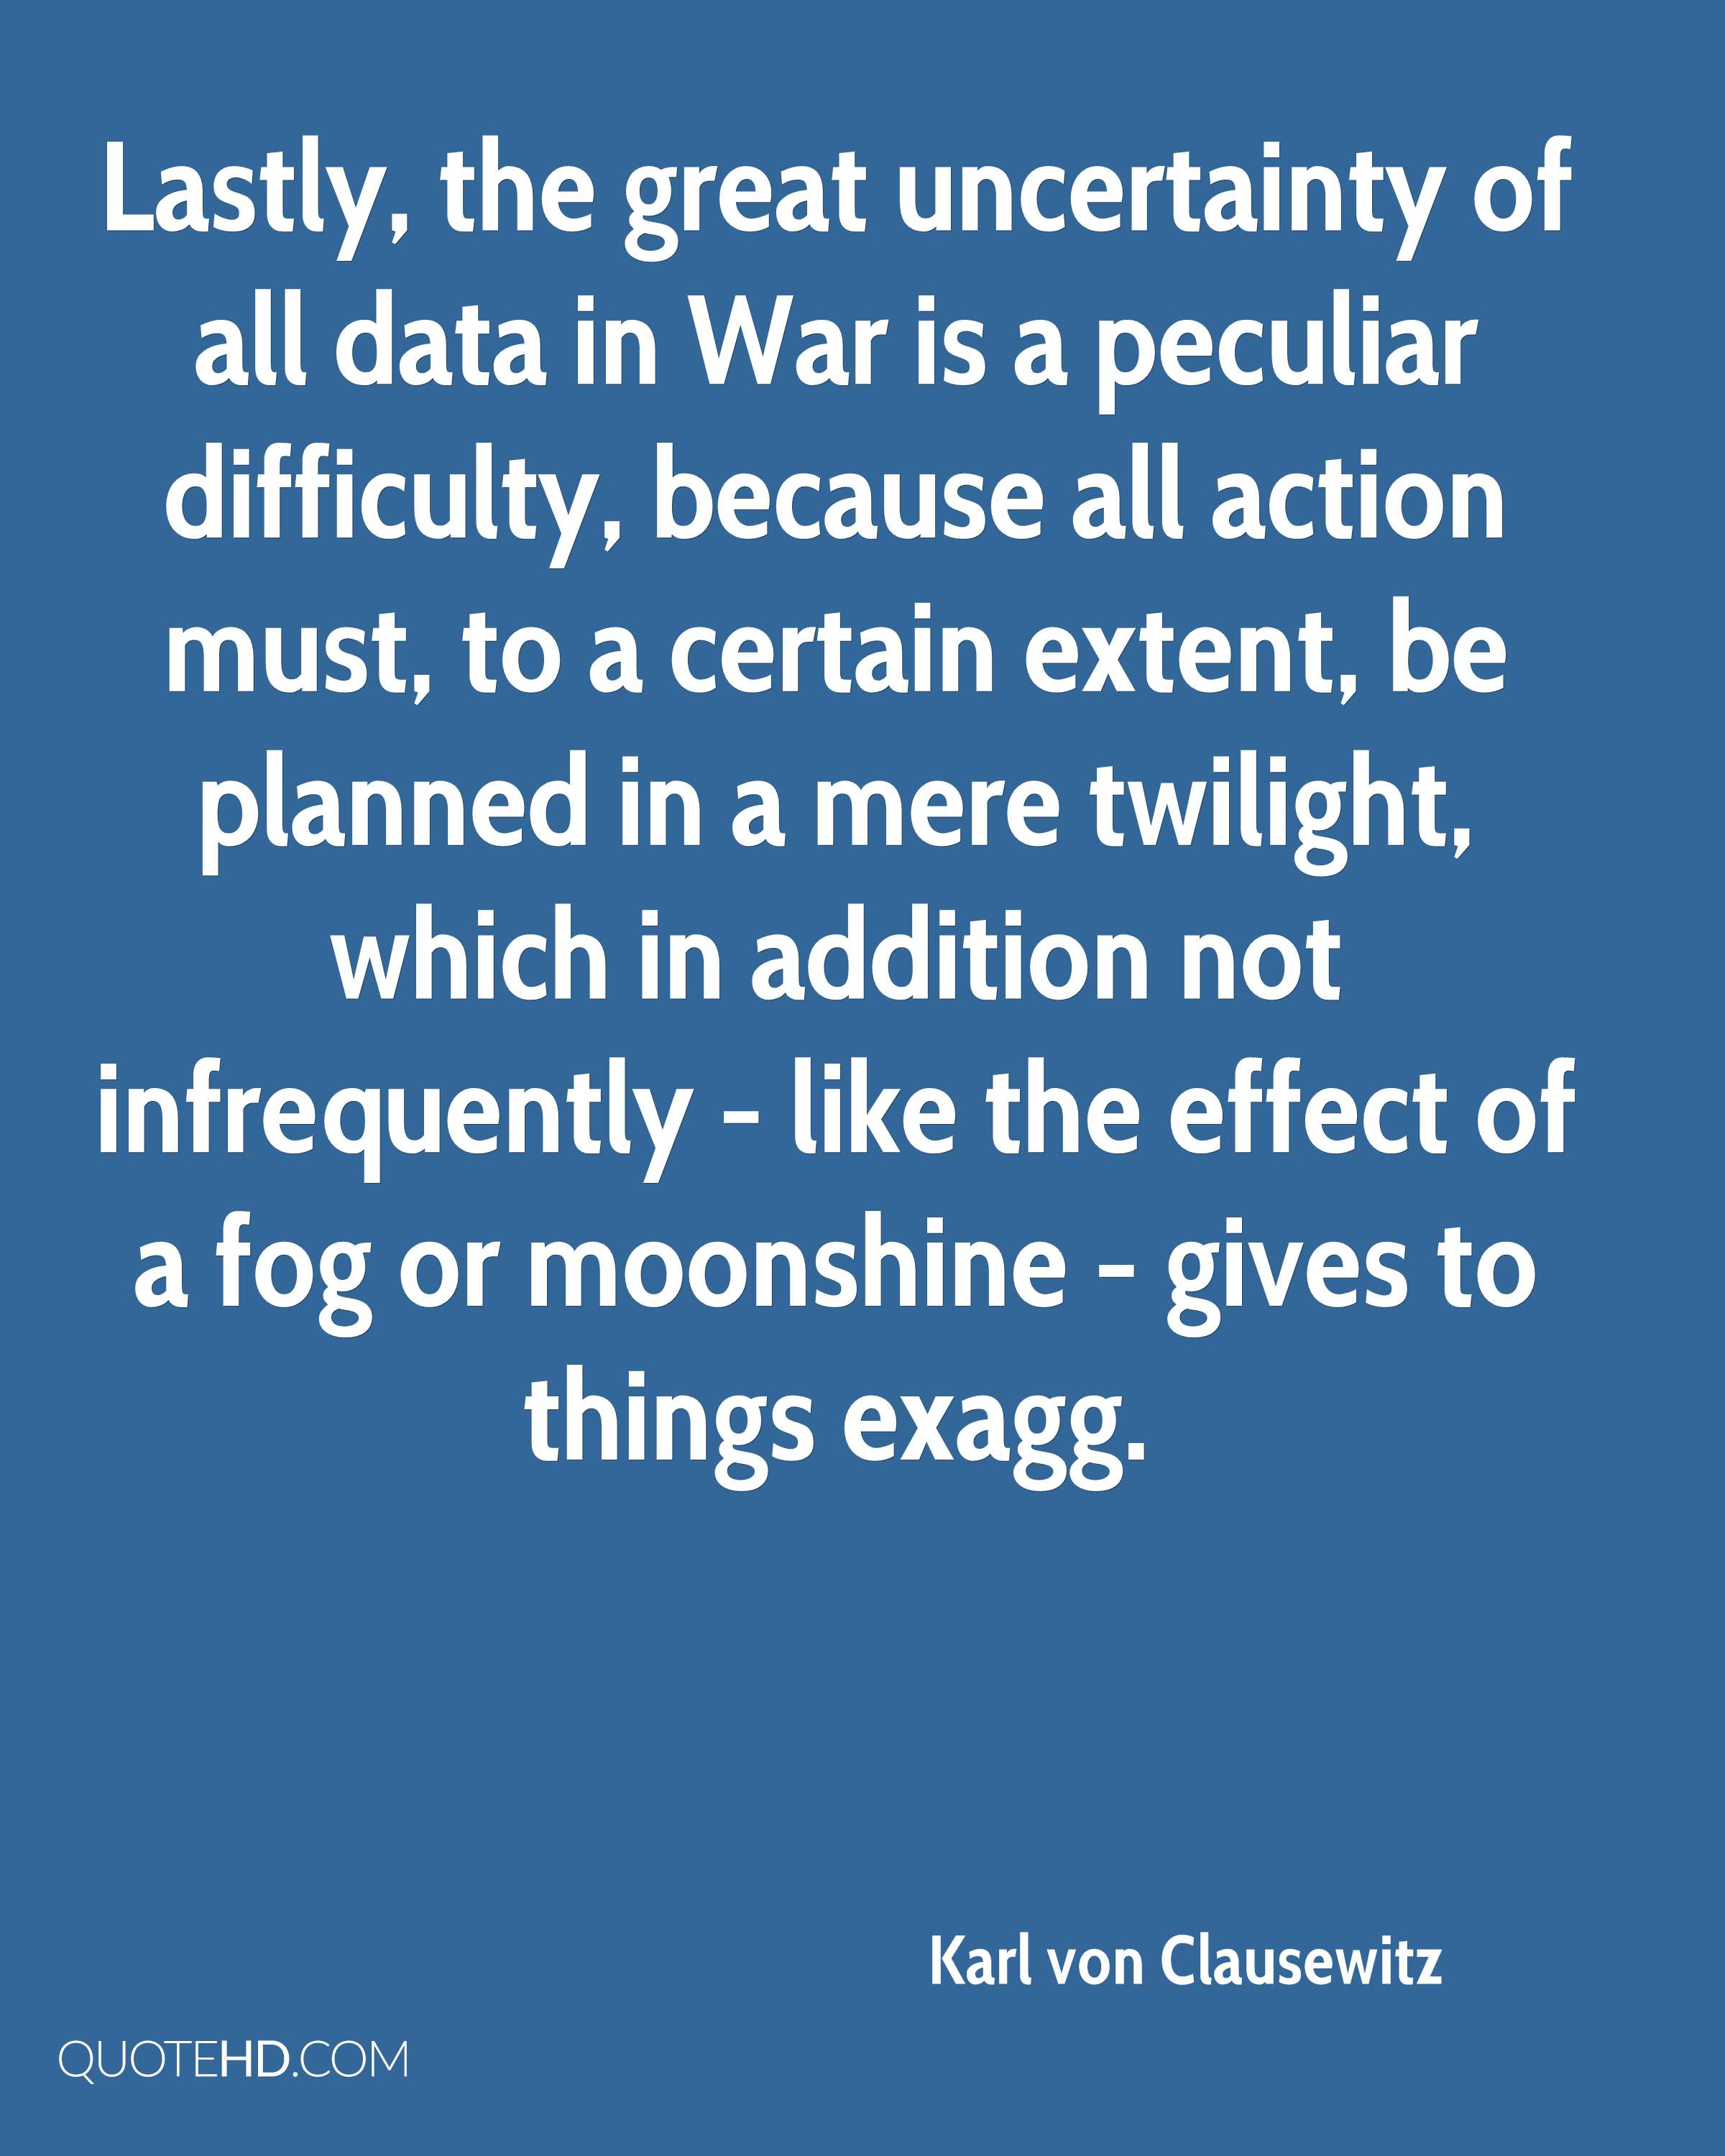 Lastly, the great uncertainty of all data in War is a peculiar difficulty, because all action must, to a certain extent, be planned in a mere twilight, which in addition not infrequently - like the effect of a fog or moonshine - gives to things exagg.